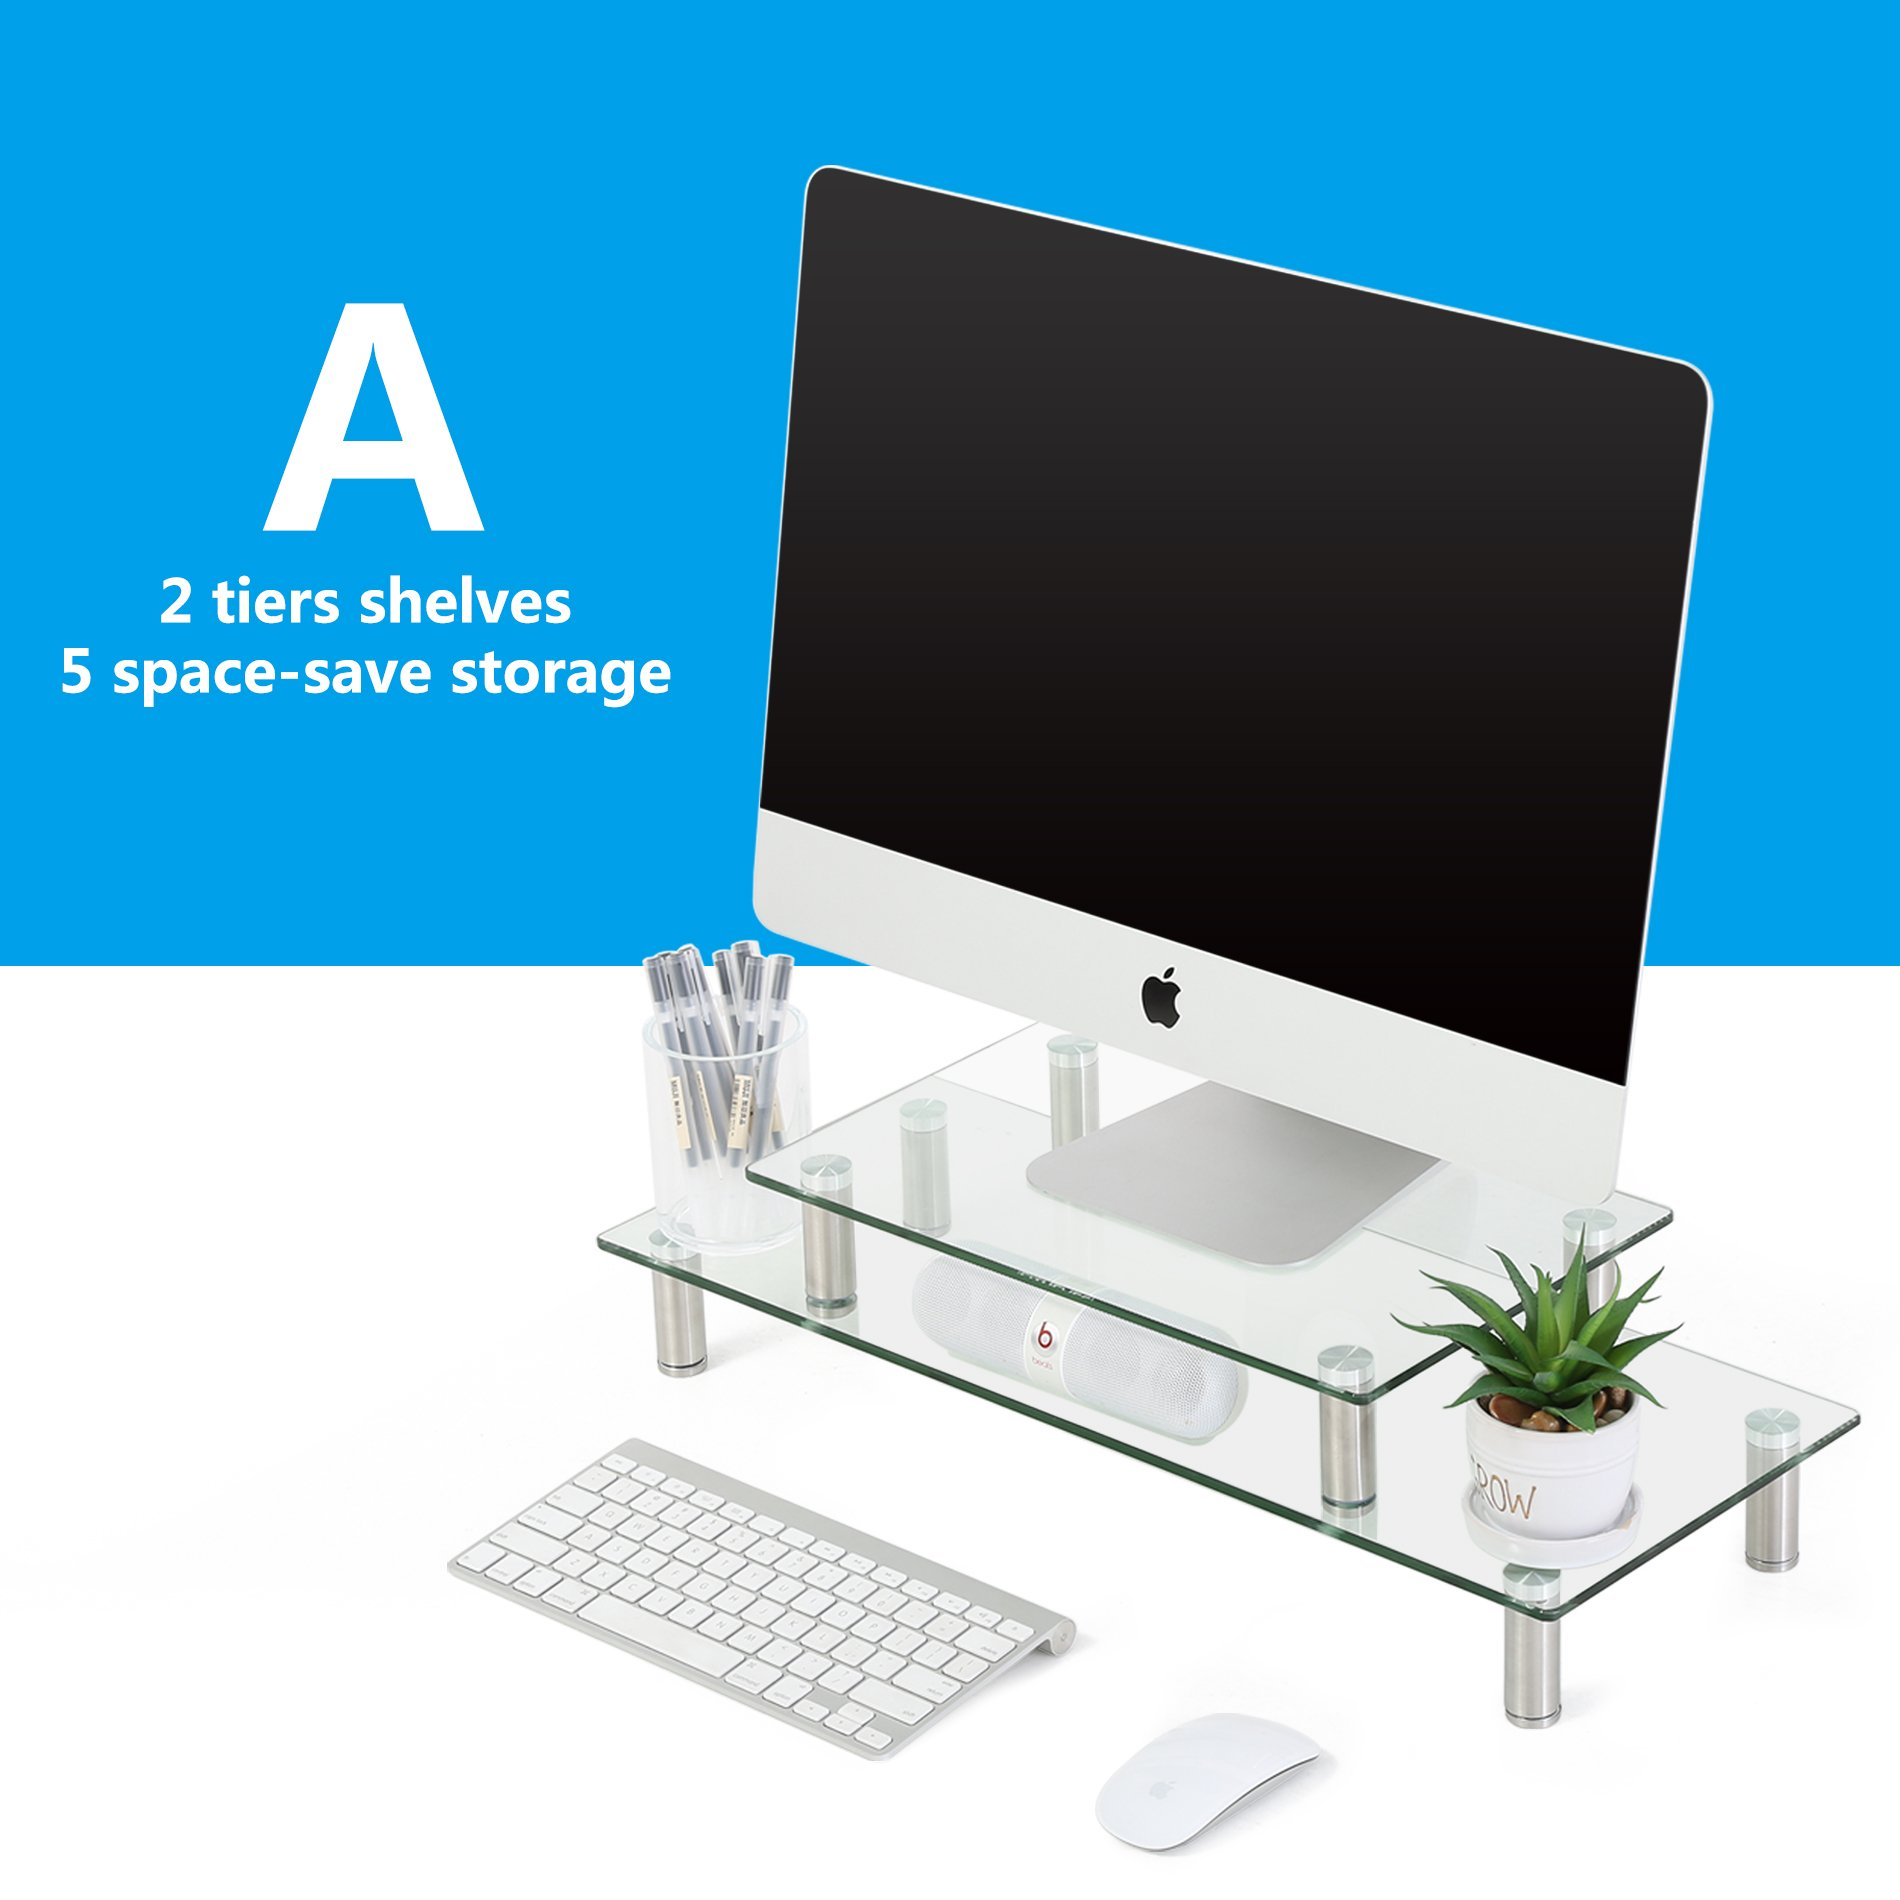 FITUEYES Clear Tempered Glass Computer Monitor Riser with Height Adjustable Multi Media Desktop Stand for Flat Screen LCD LED TV, Laptop/Notebook/Xbox,DT206002GC by Fitueyes (Image #4)